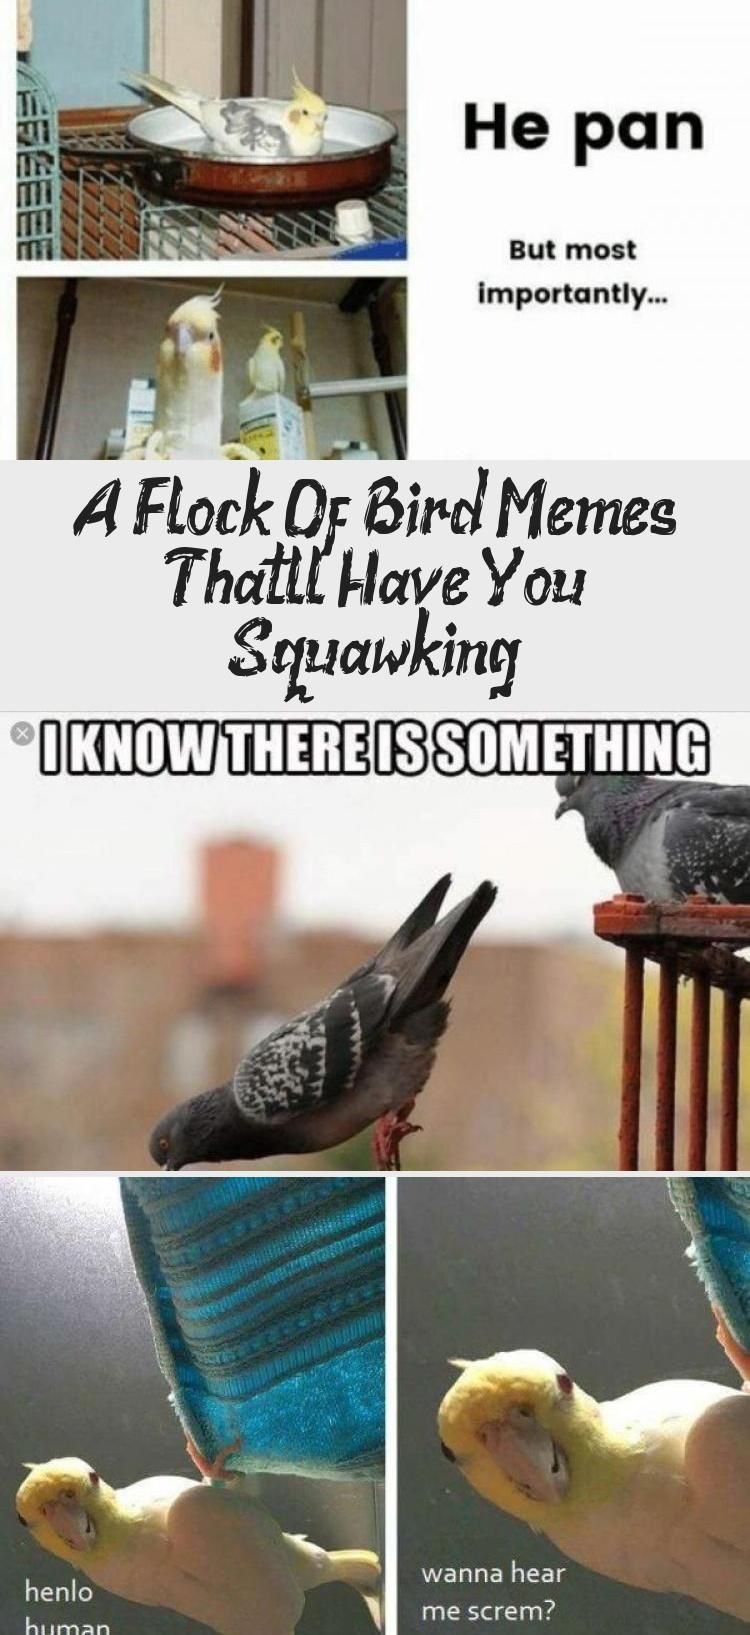 A Flock Of Bird Memes That Ll Have You Squawking Humor Flock Of Birds Memes Bird